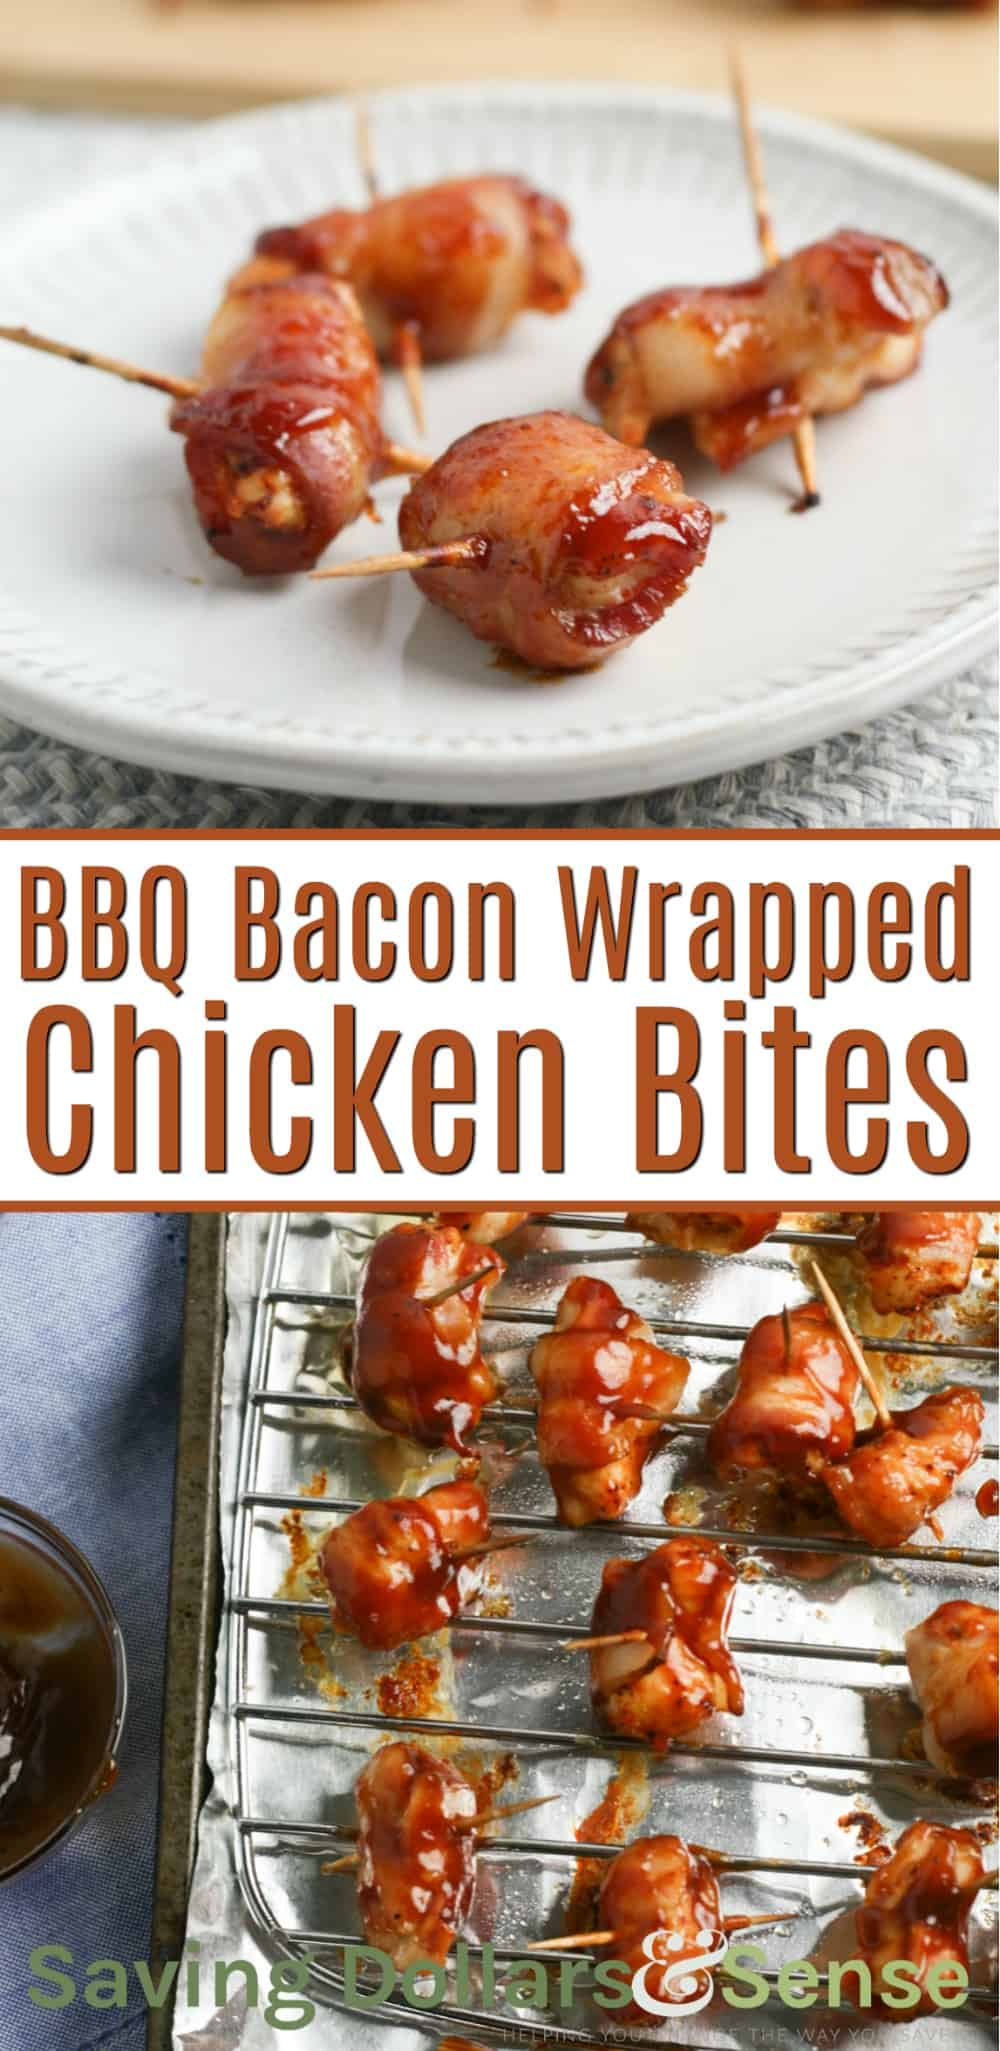 BBQ Bacon Wrapped Chicken Bites